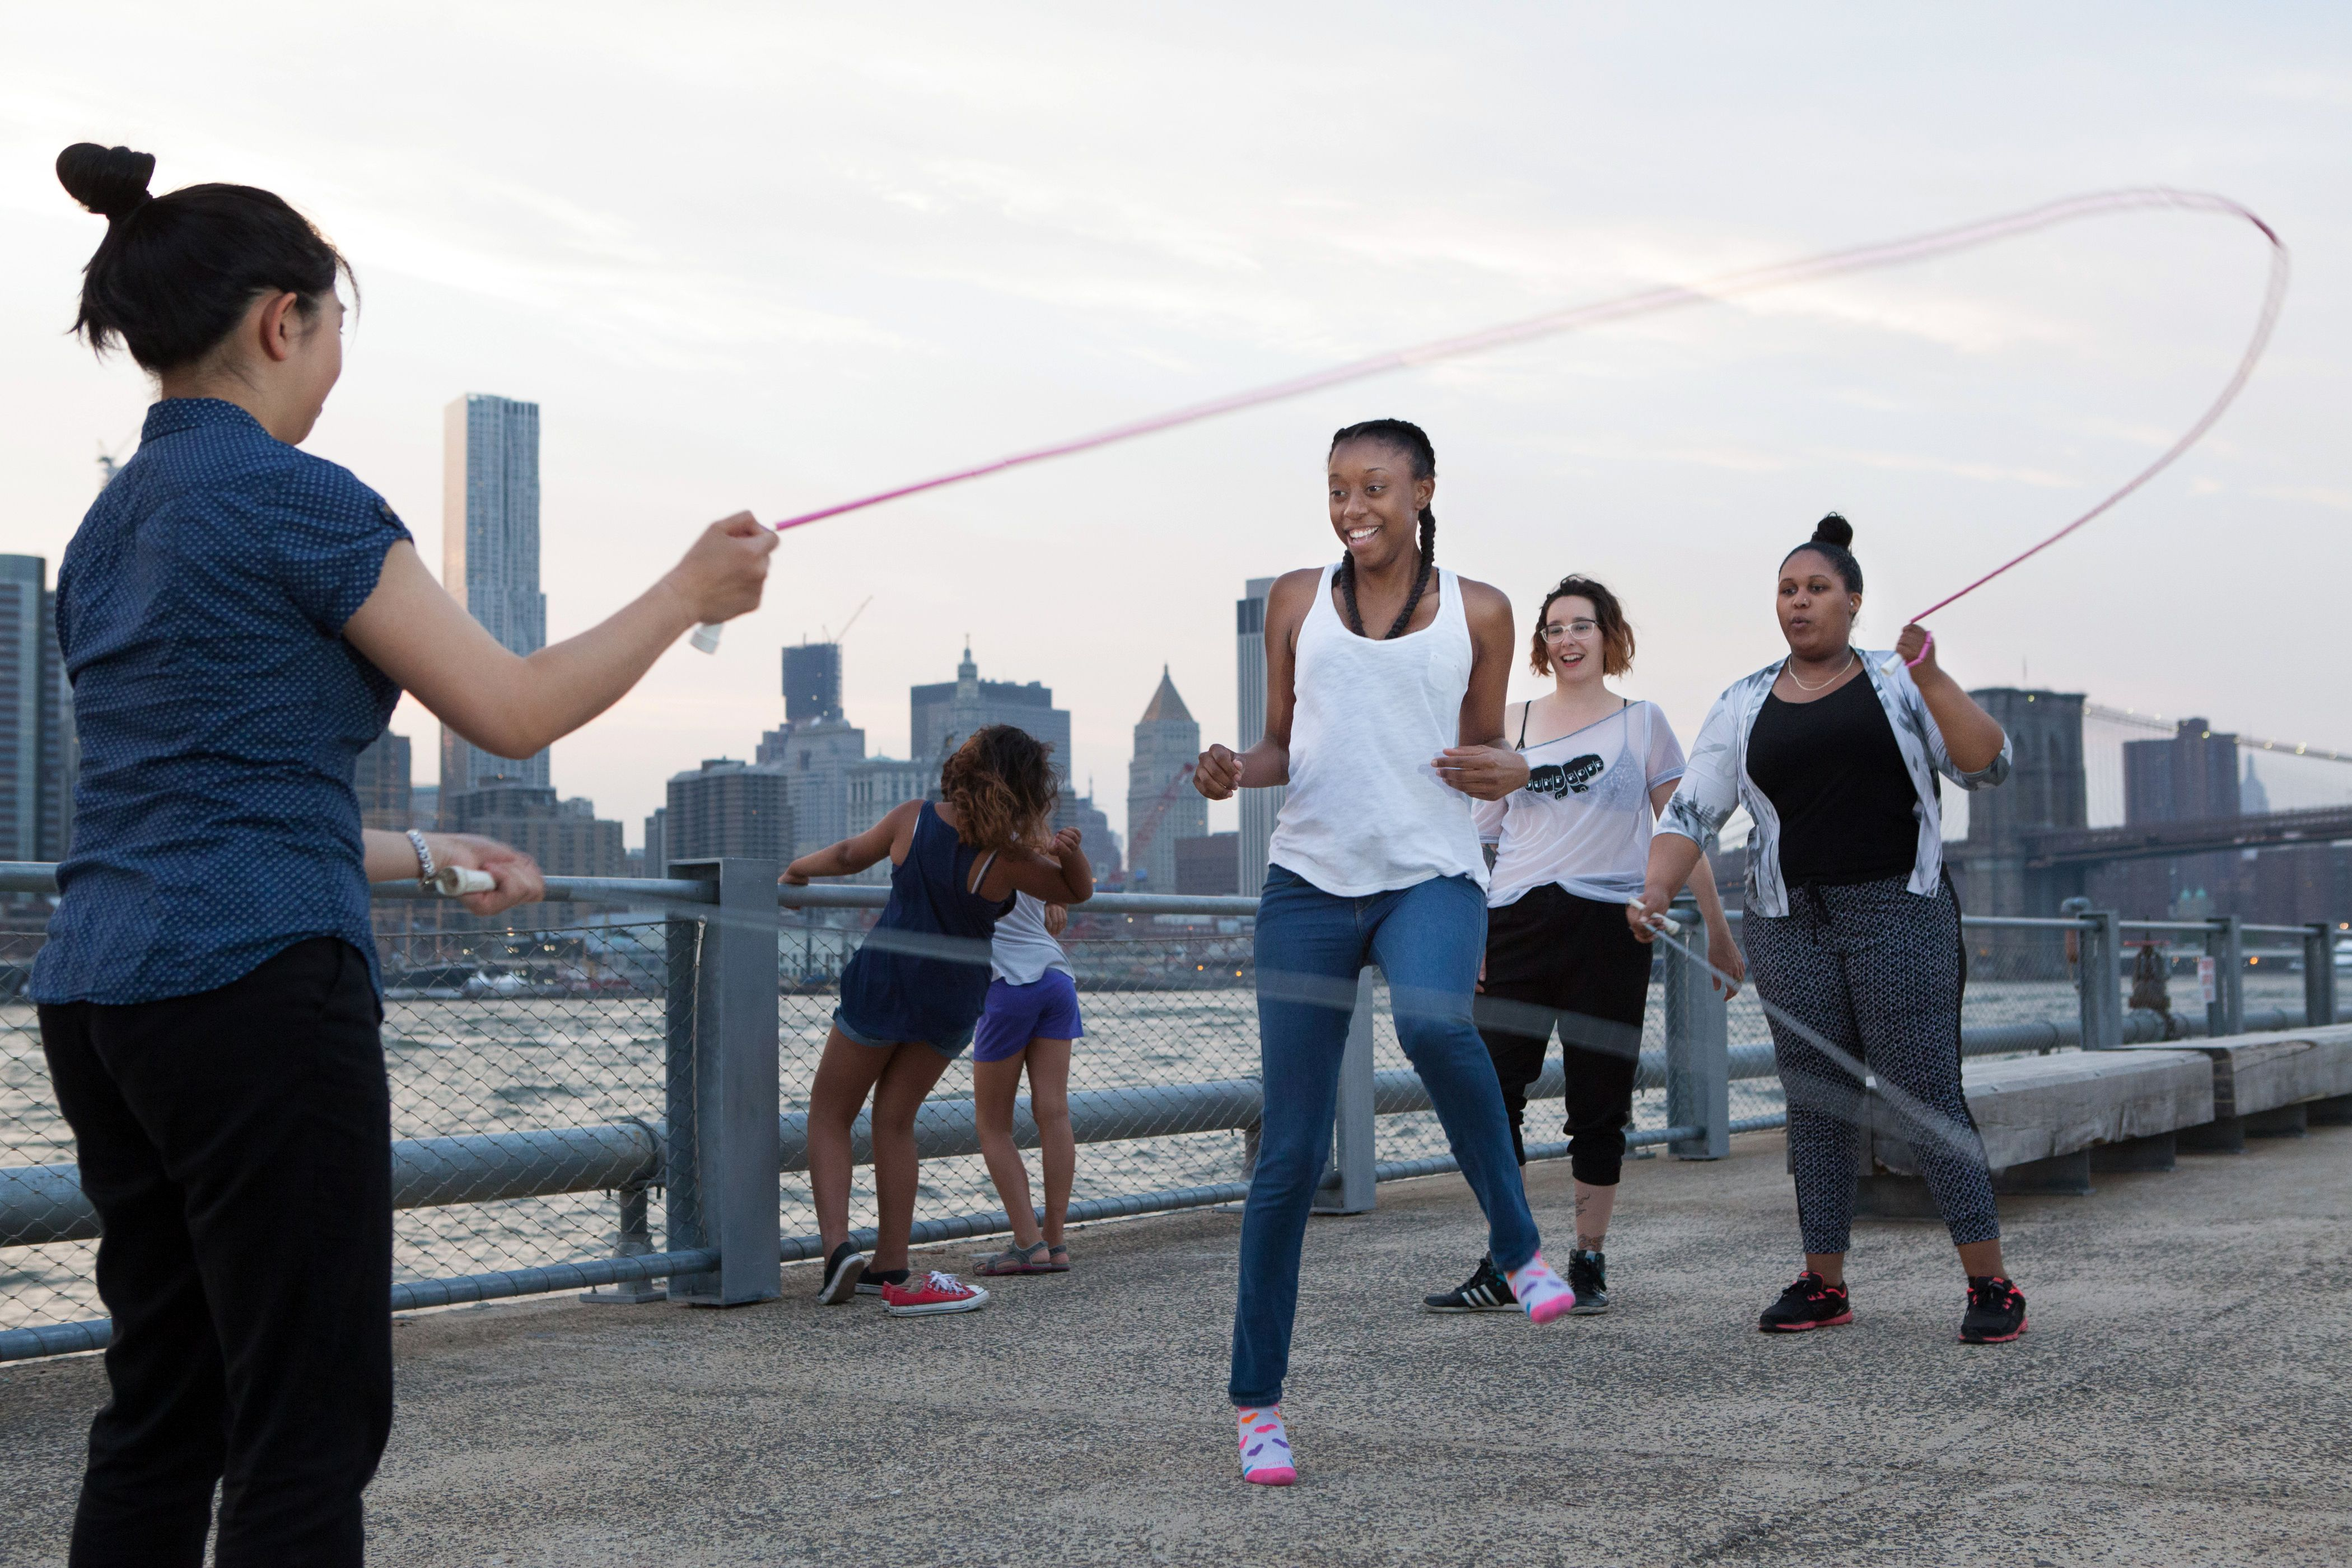 Brooklyn Bridge Park Announces Over 500 FREE And Low-cost Events For The Summer